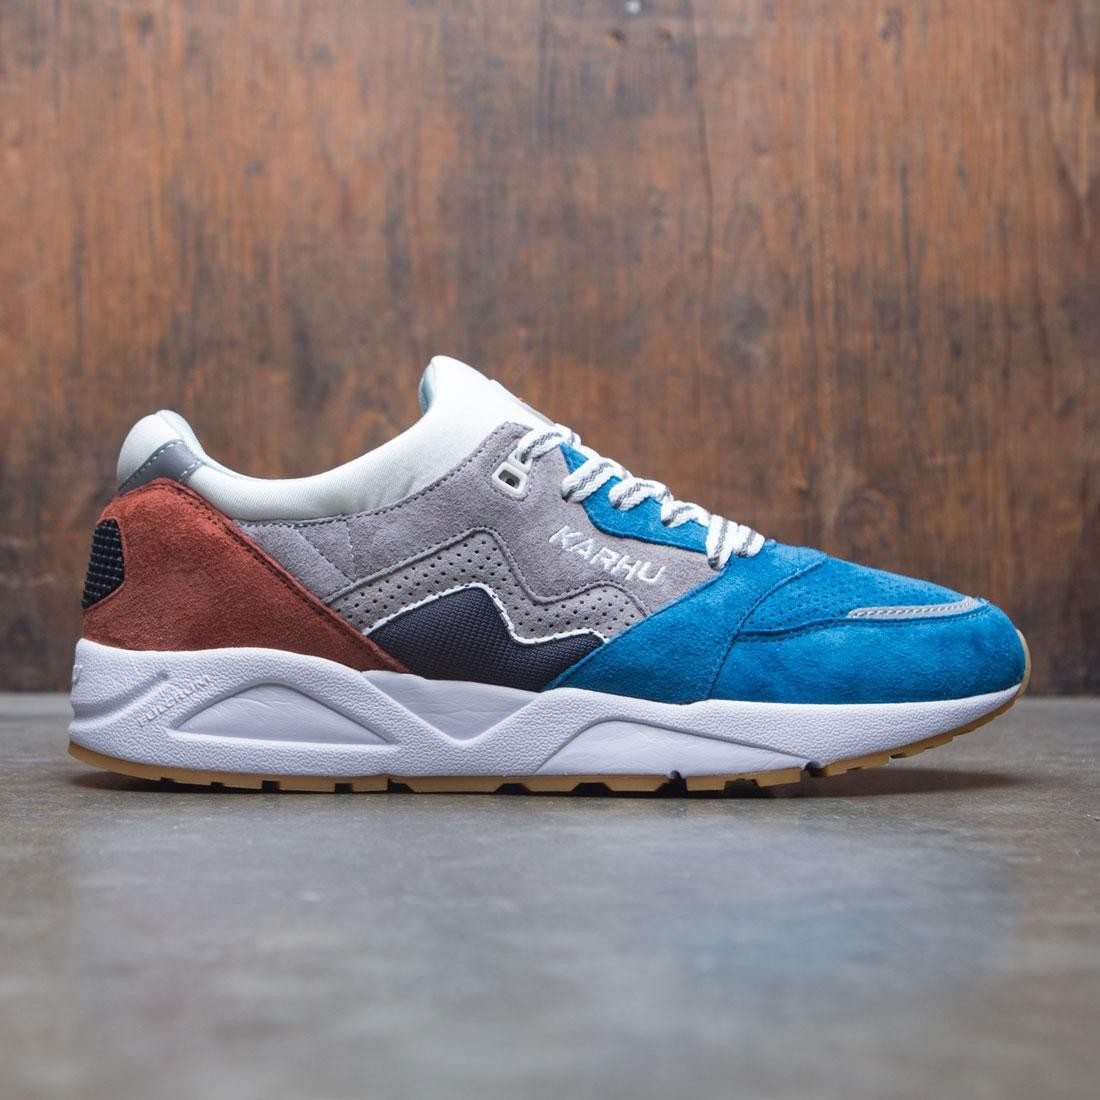 【海外限定】メンズ靴 スニーカー 【 KARHU MEN ARIA BURNT OCHRE BLUE MYKONOS 】